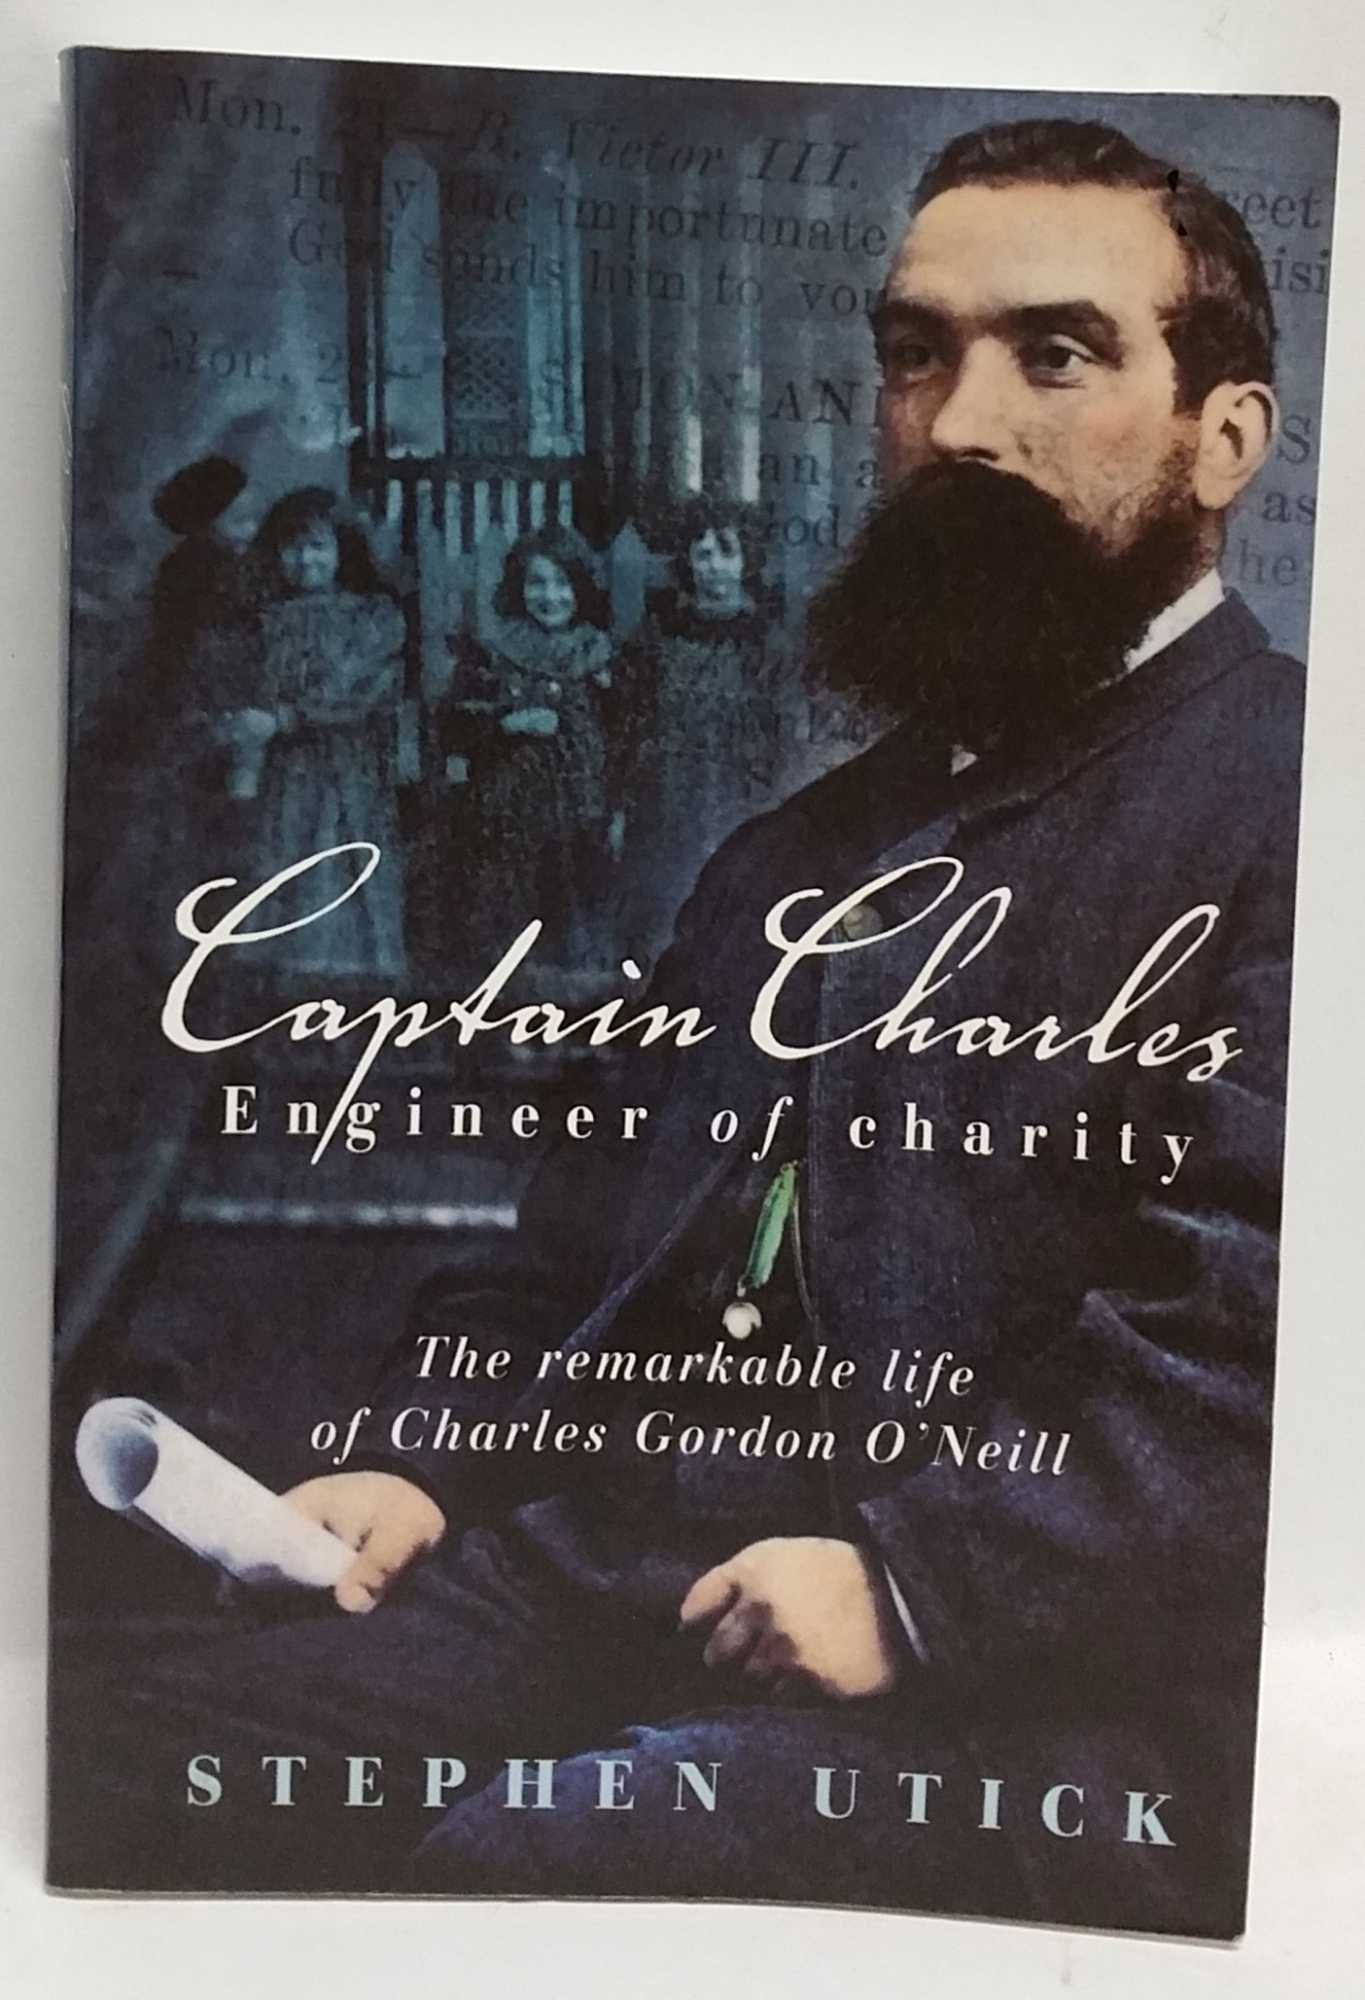 STEPHEN UTICK - Captain Charles: Engineer of Charity: The remarkable life of Charles Gordon O'Neill